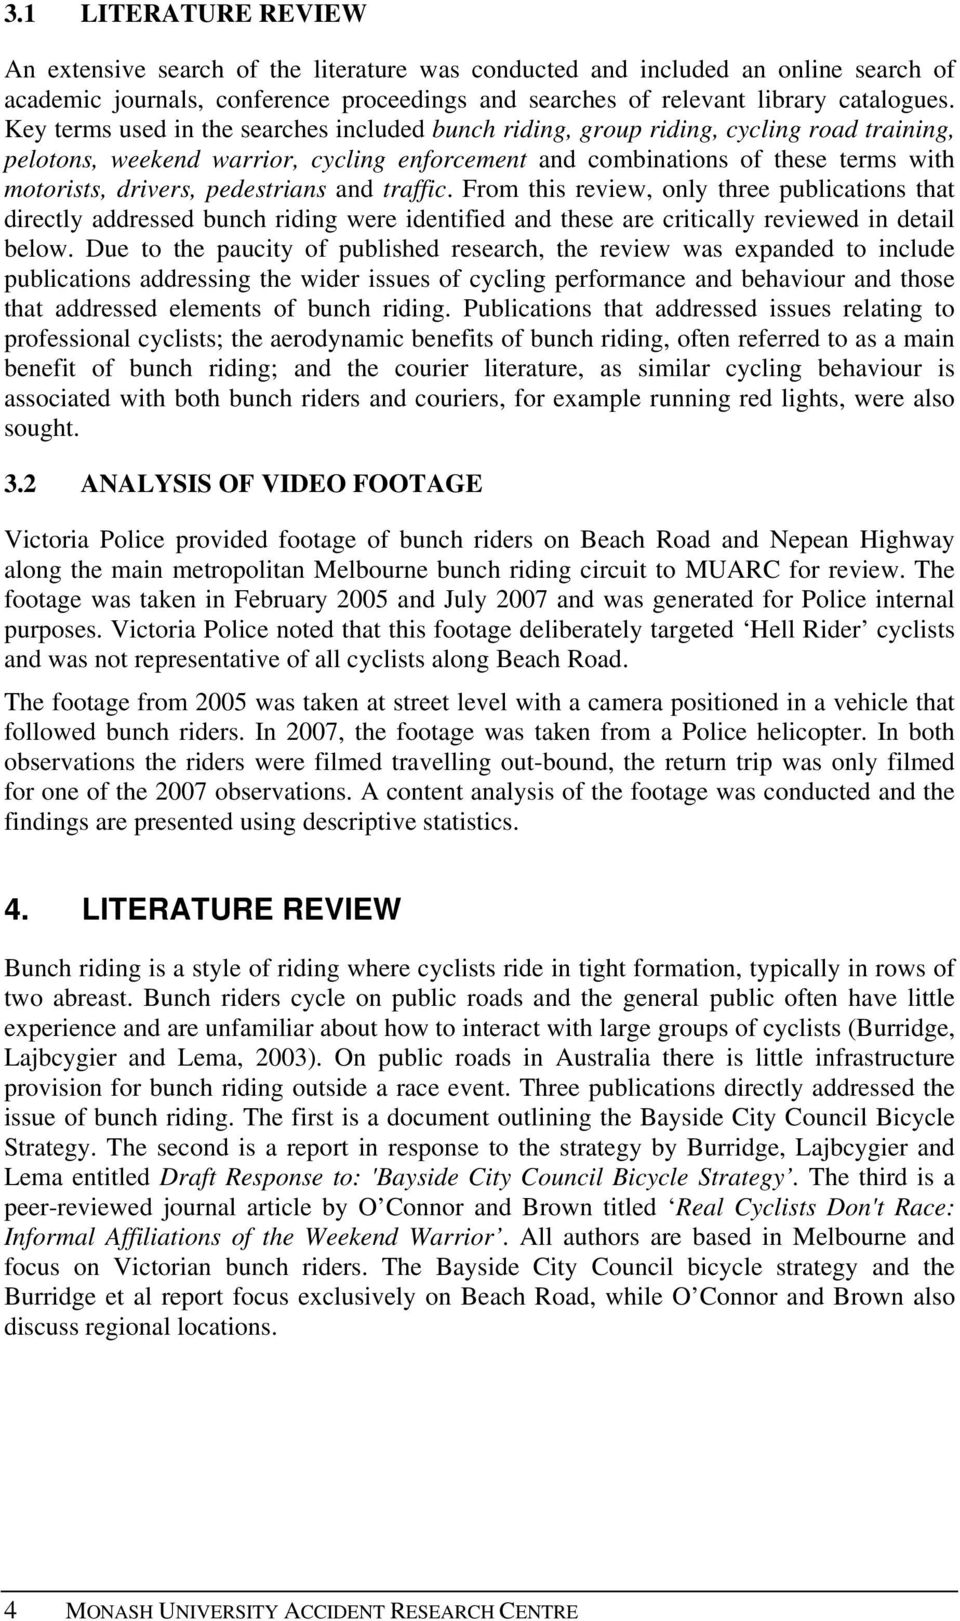 pedestrians and traffic. From this review, only three publications that directly addressed bunch riding were identified and these are critically reviewed in detail below.